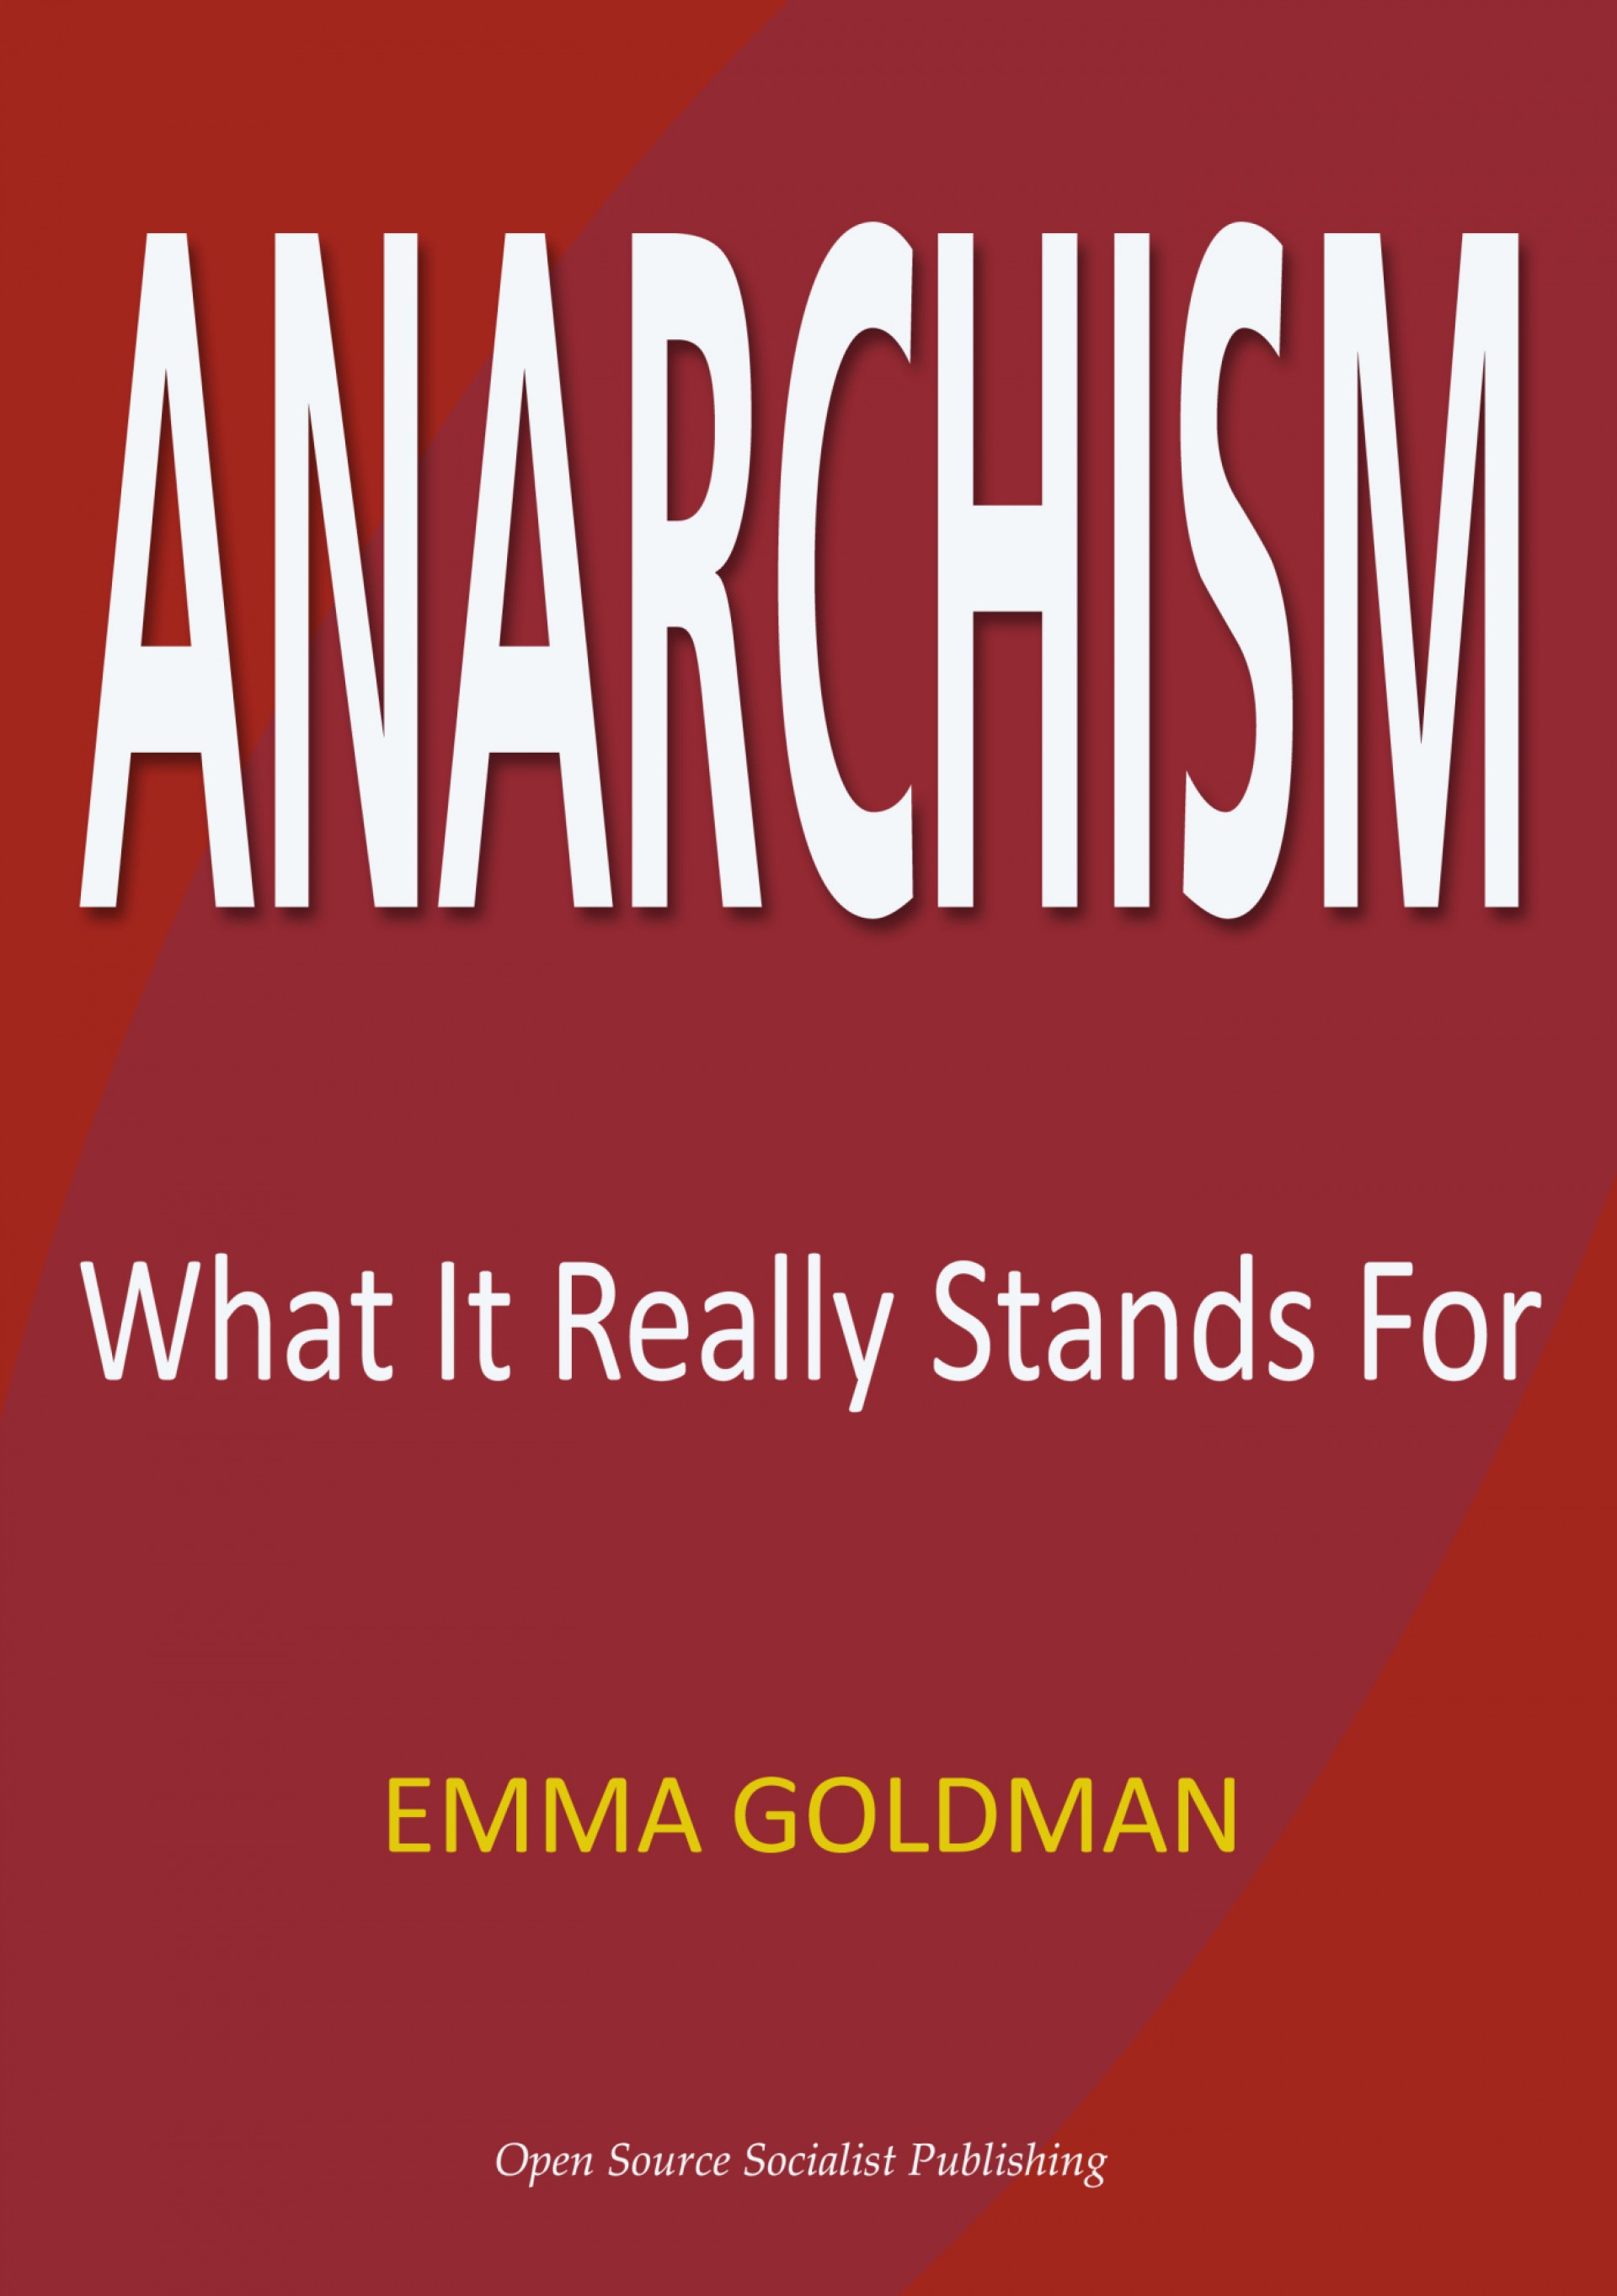 017 Essay Example Anarchism And Other Essays Anarch Wirsf Incredible Emma Goldman Summary Mla Citation 1920